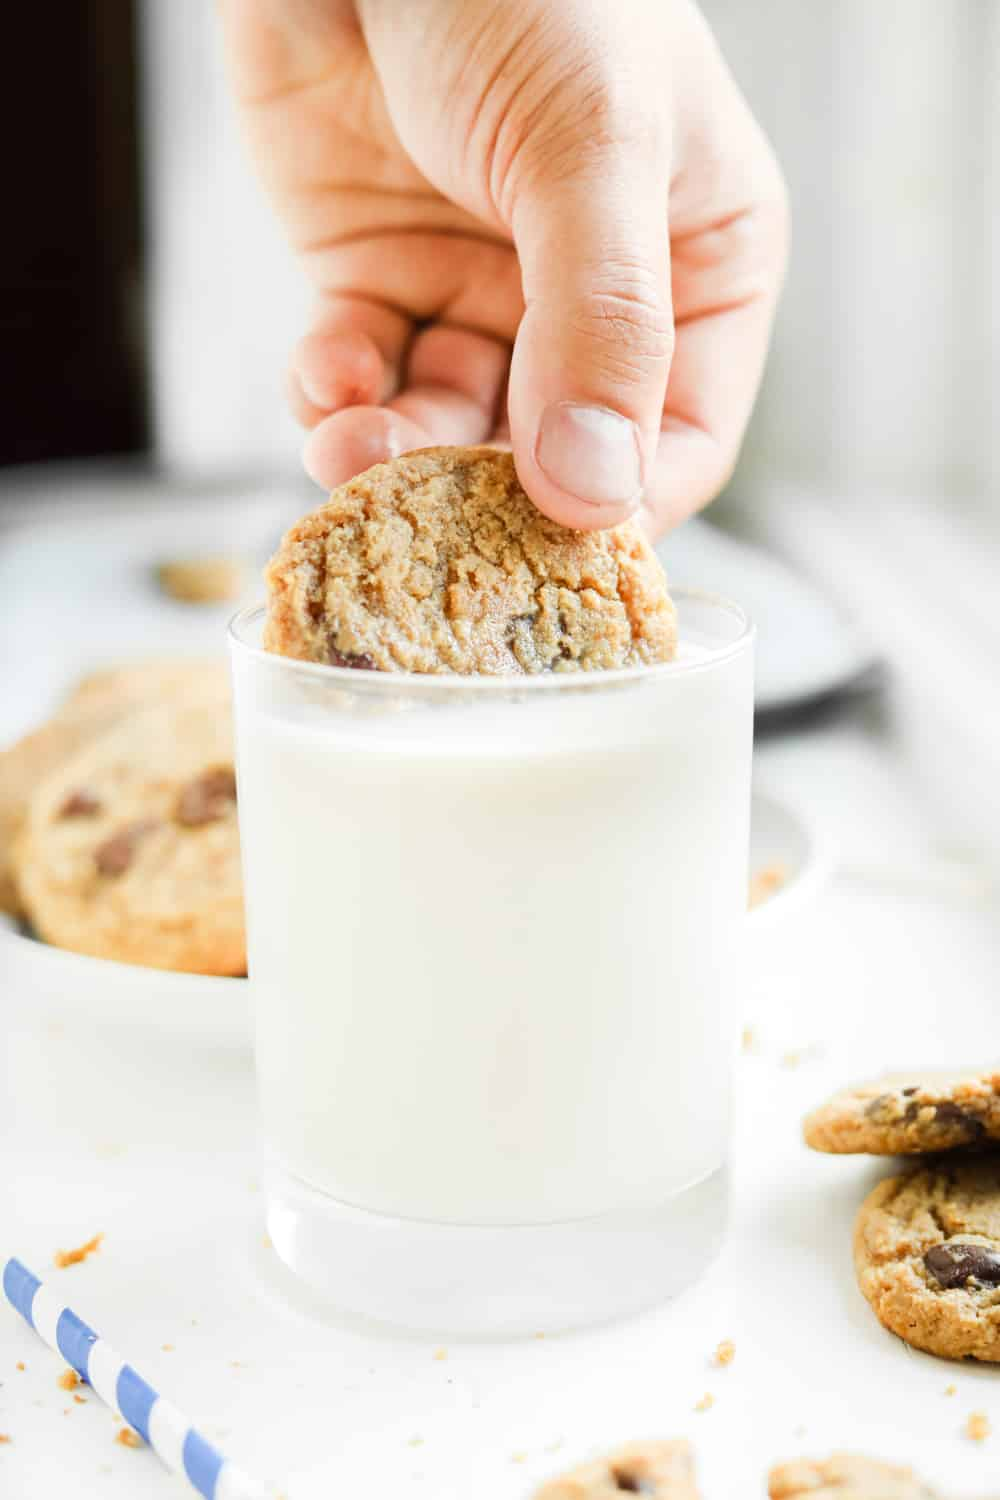 A hand dipping half of a chocolate chip cookie in a glass of milk.